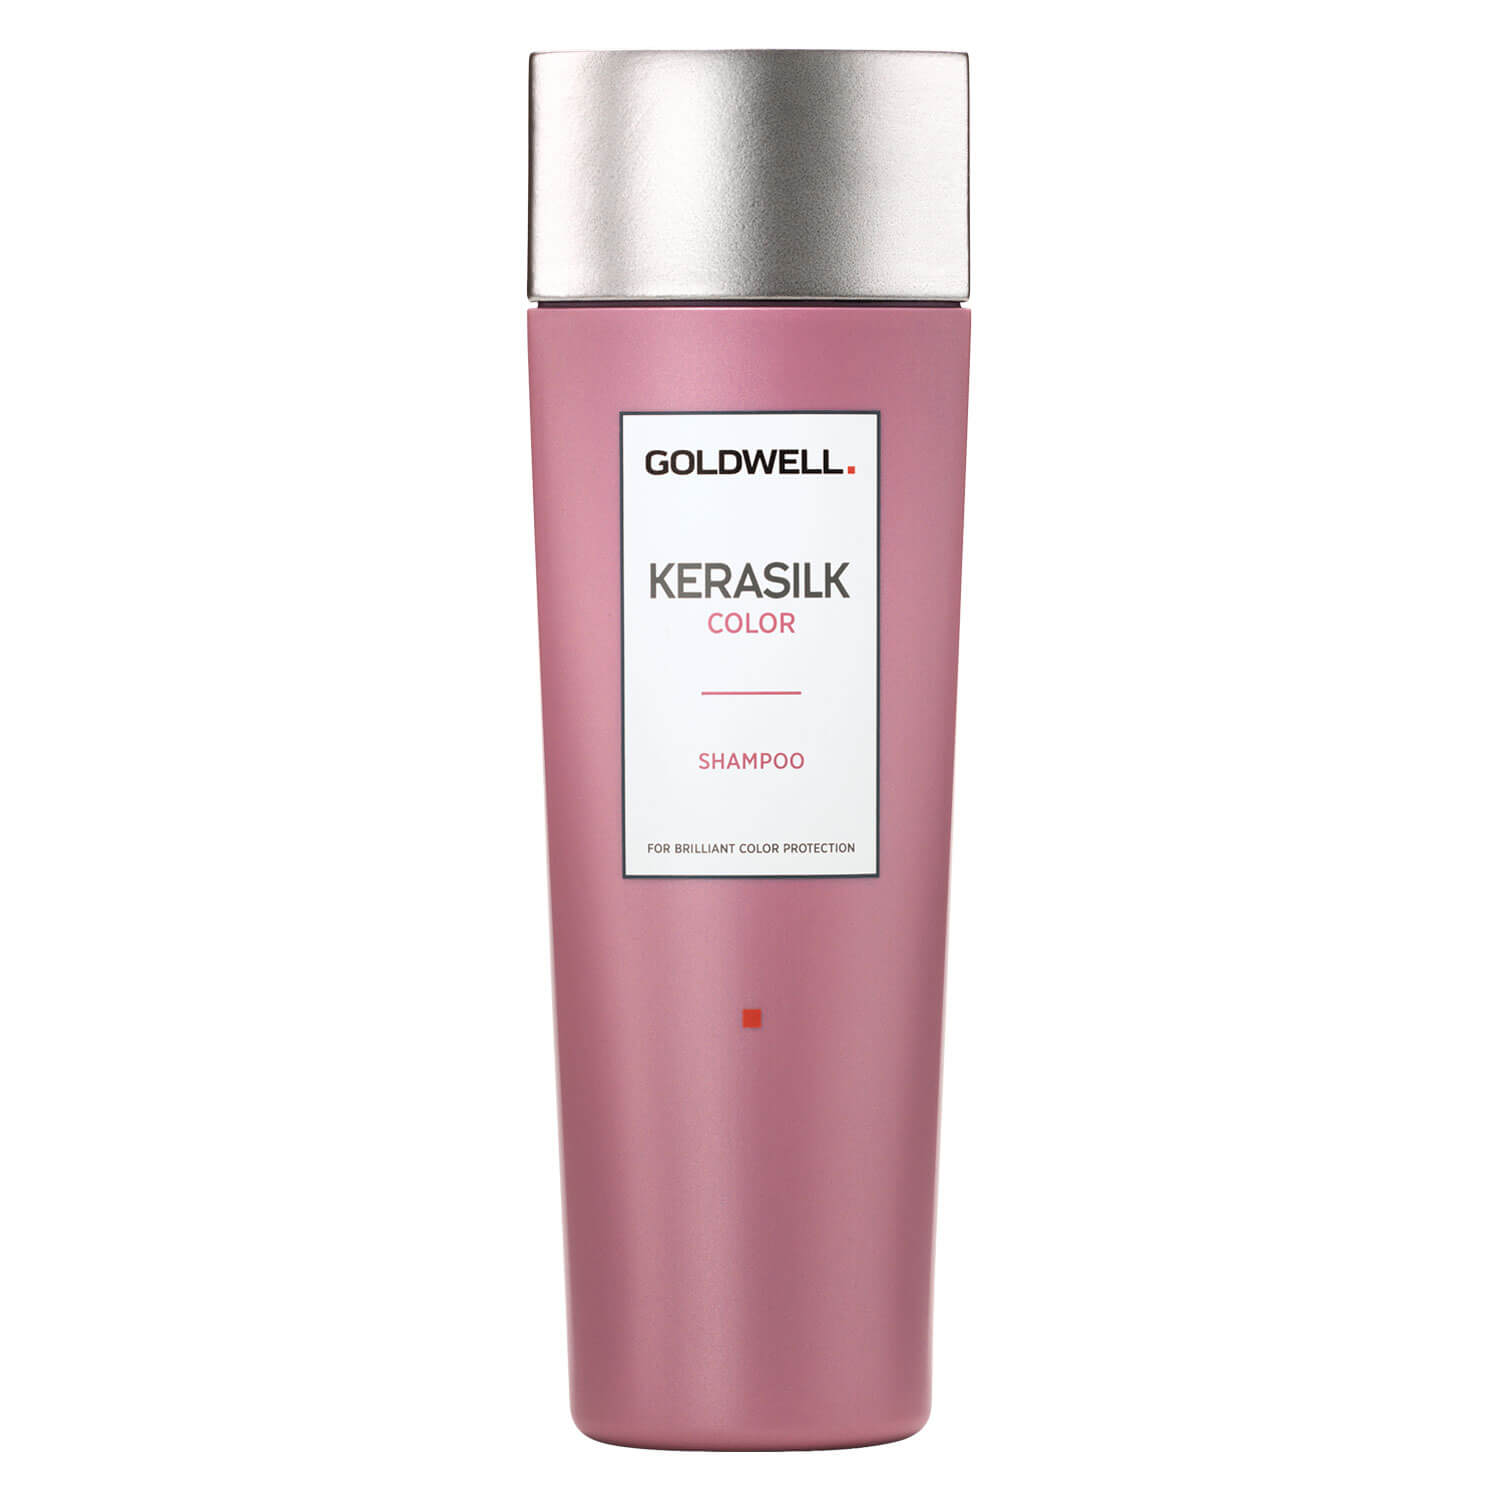 Kerasilk Color - Shampoo - 250ml